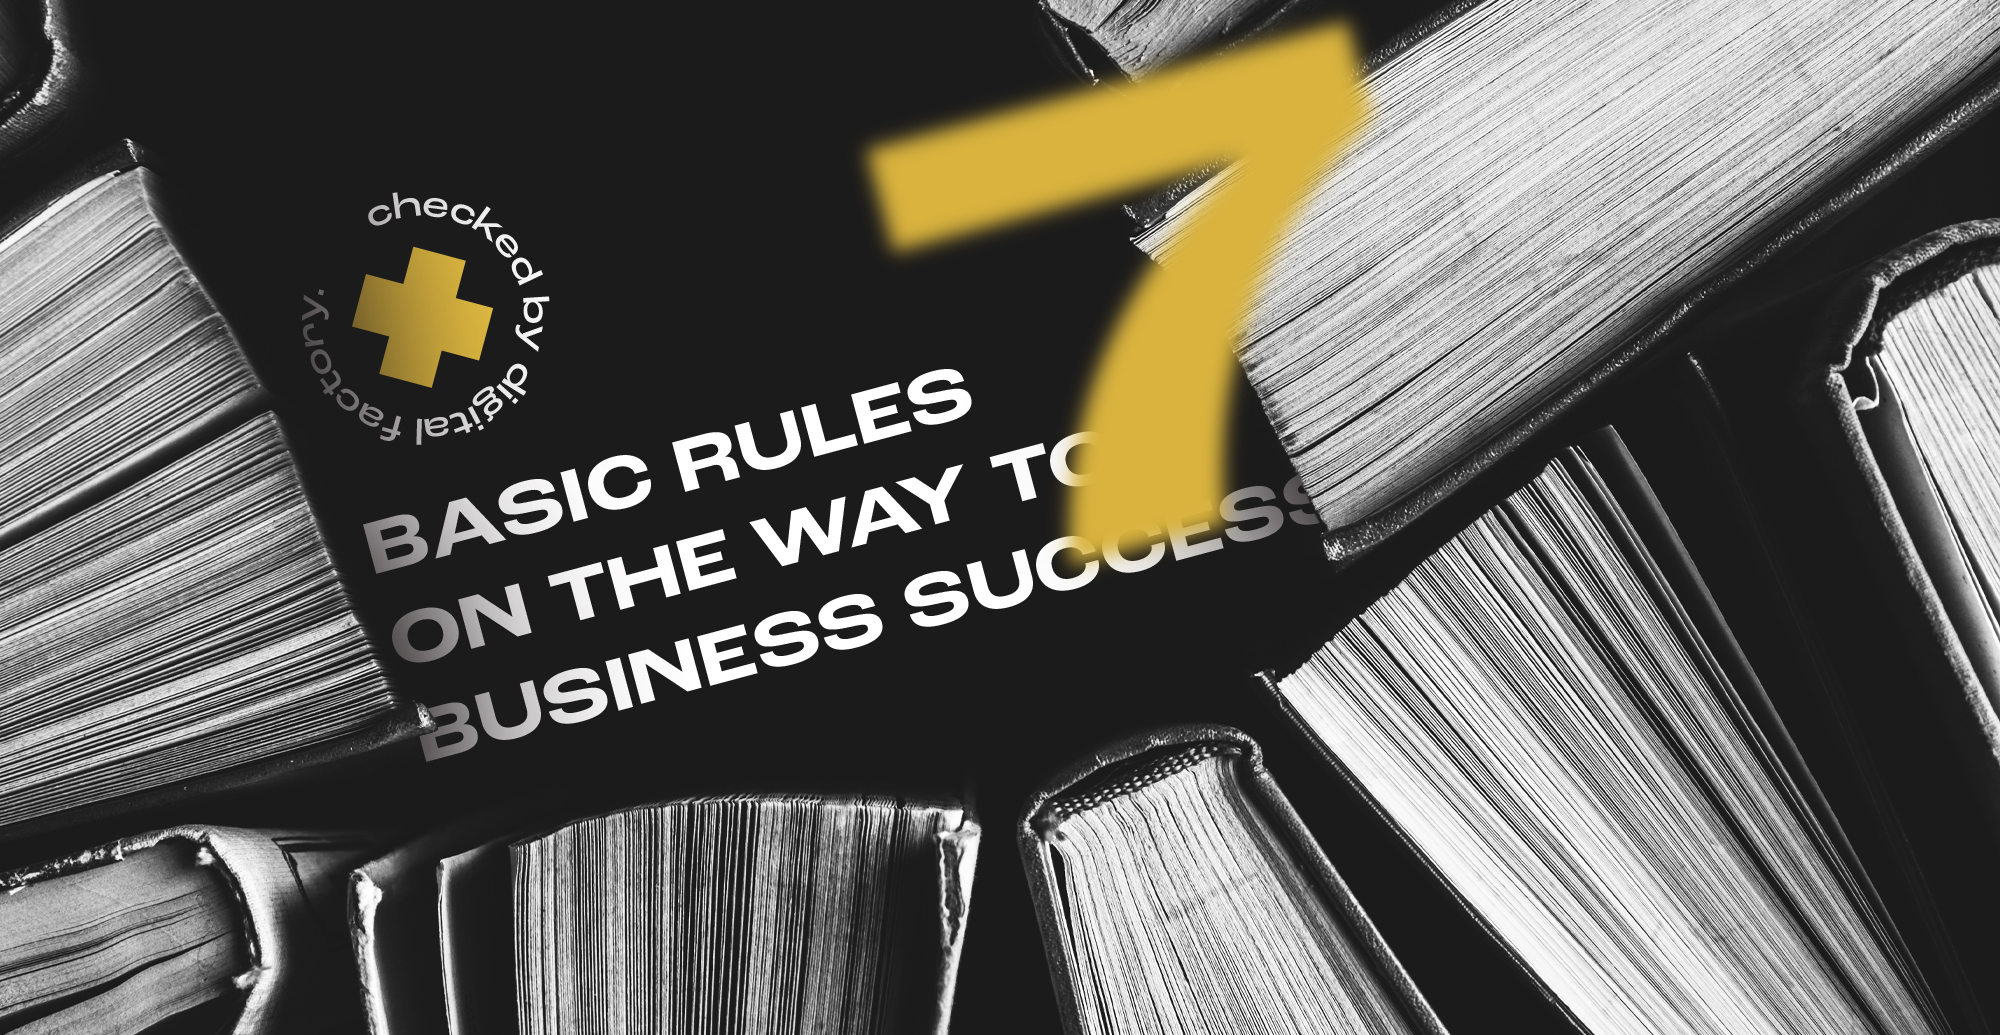 7 basic rules on the way to business success